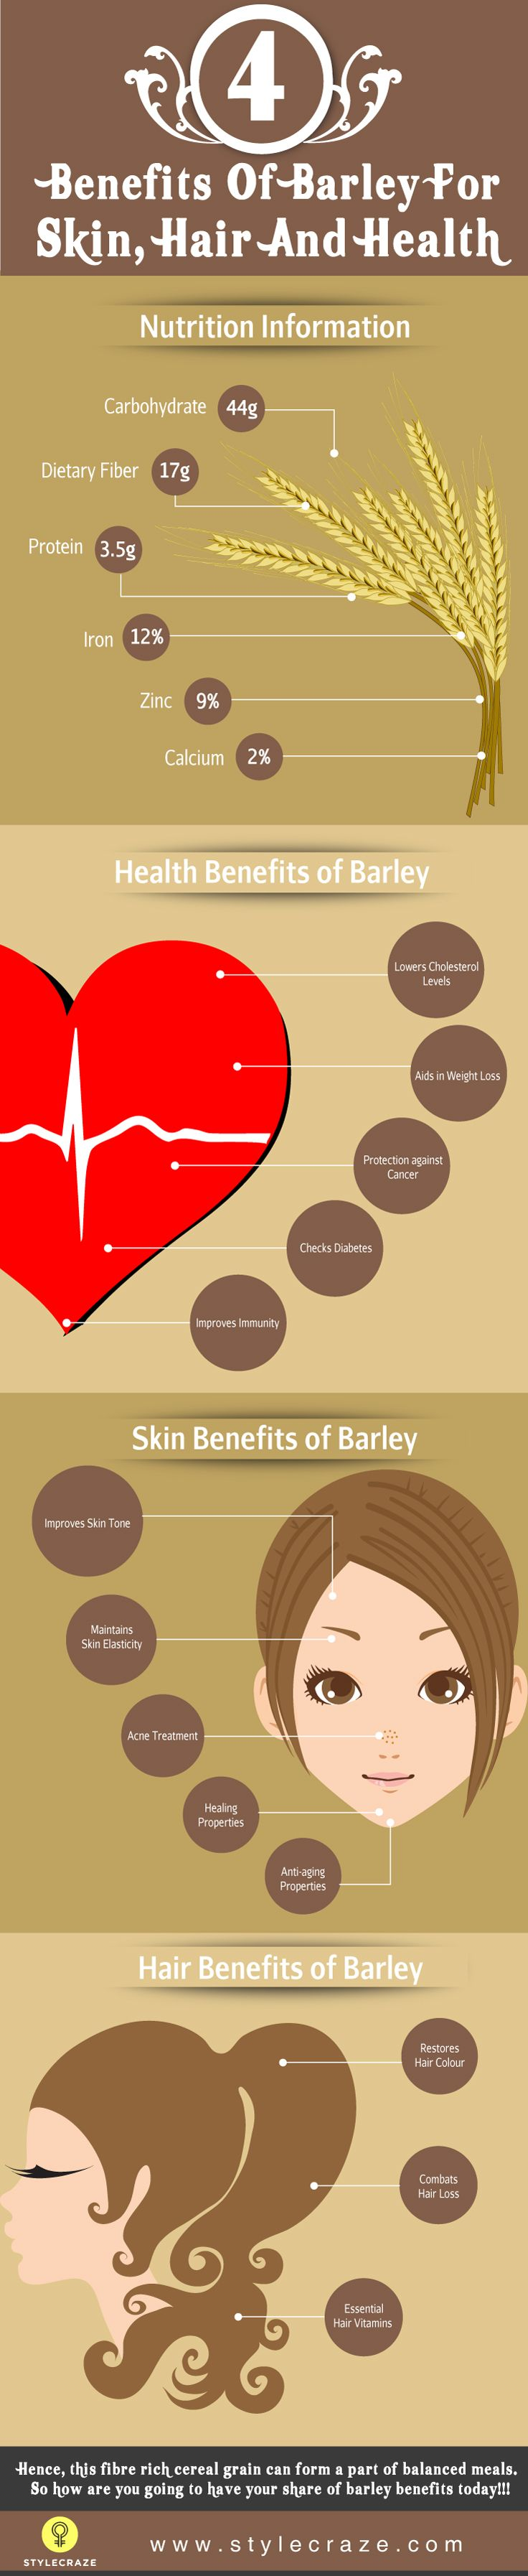 19 Best Benefits Of Barley For Skin, Hair And Health ............  When it comes to skincare, barley is extremely beneficial as it is packed with vitamin C, antioxidants and minerals. It has proven to reduce inflammation and create a barrier to protect the skin from outside pollutants........ Kur <3